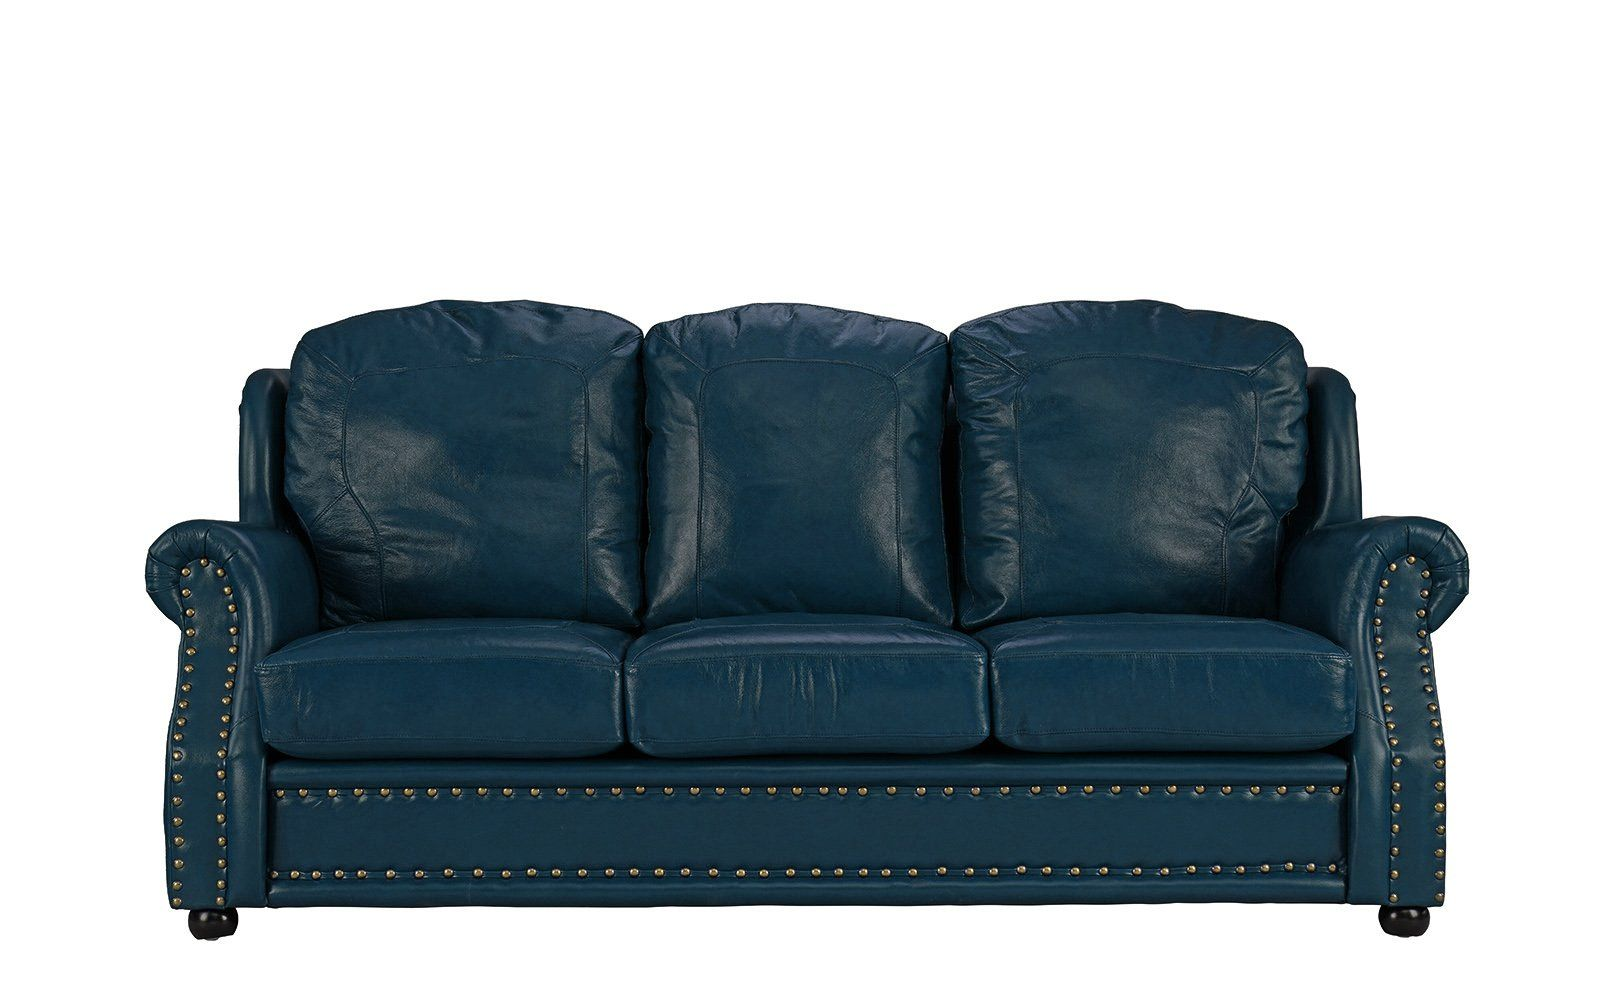 Savannah Clic Executive Style Top Gain Leather Match Sofa